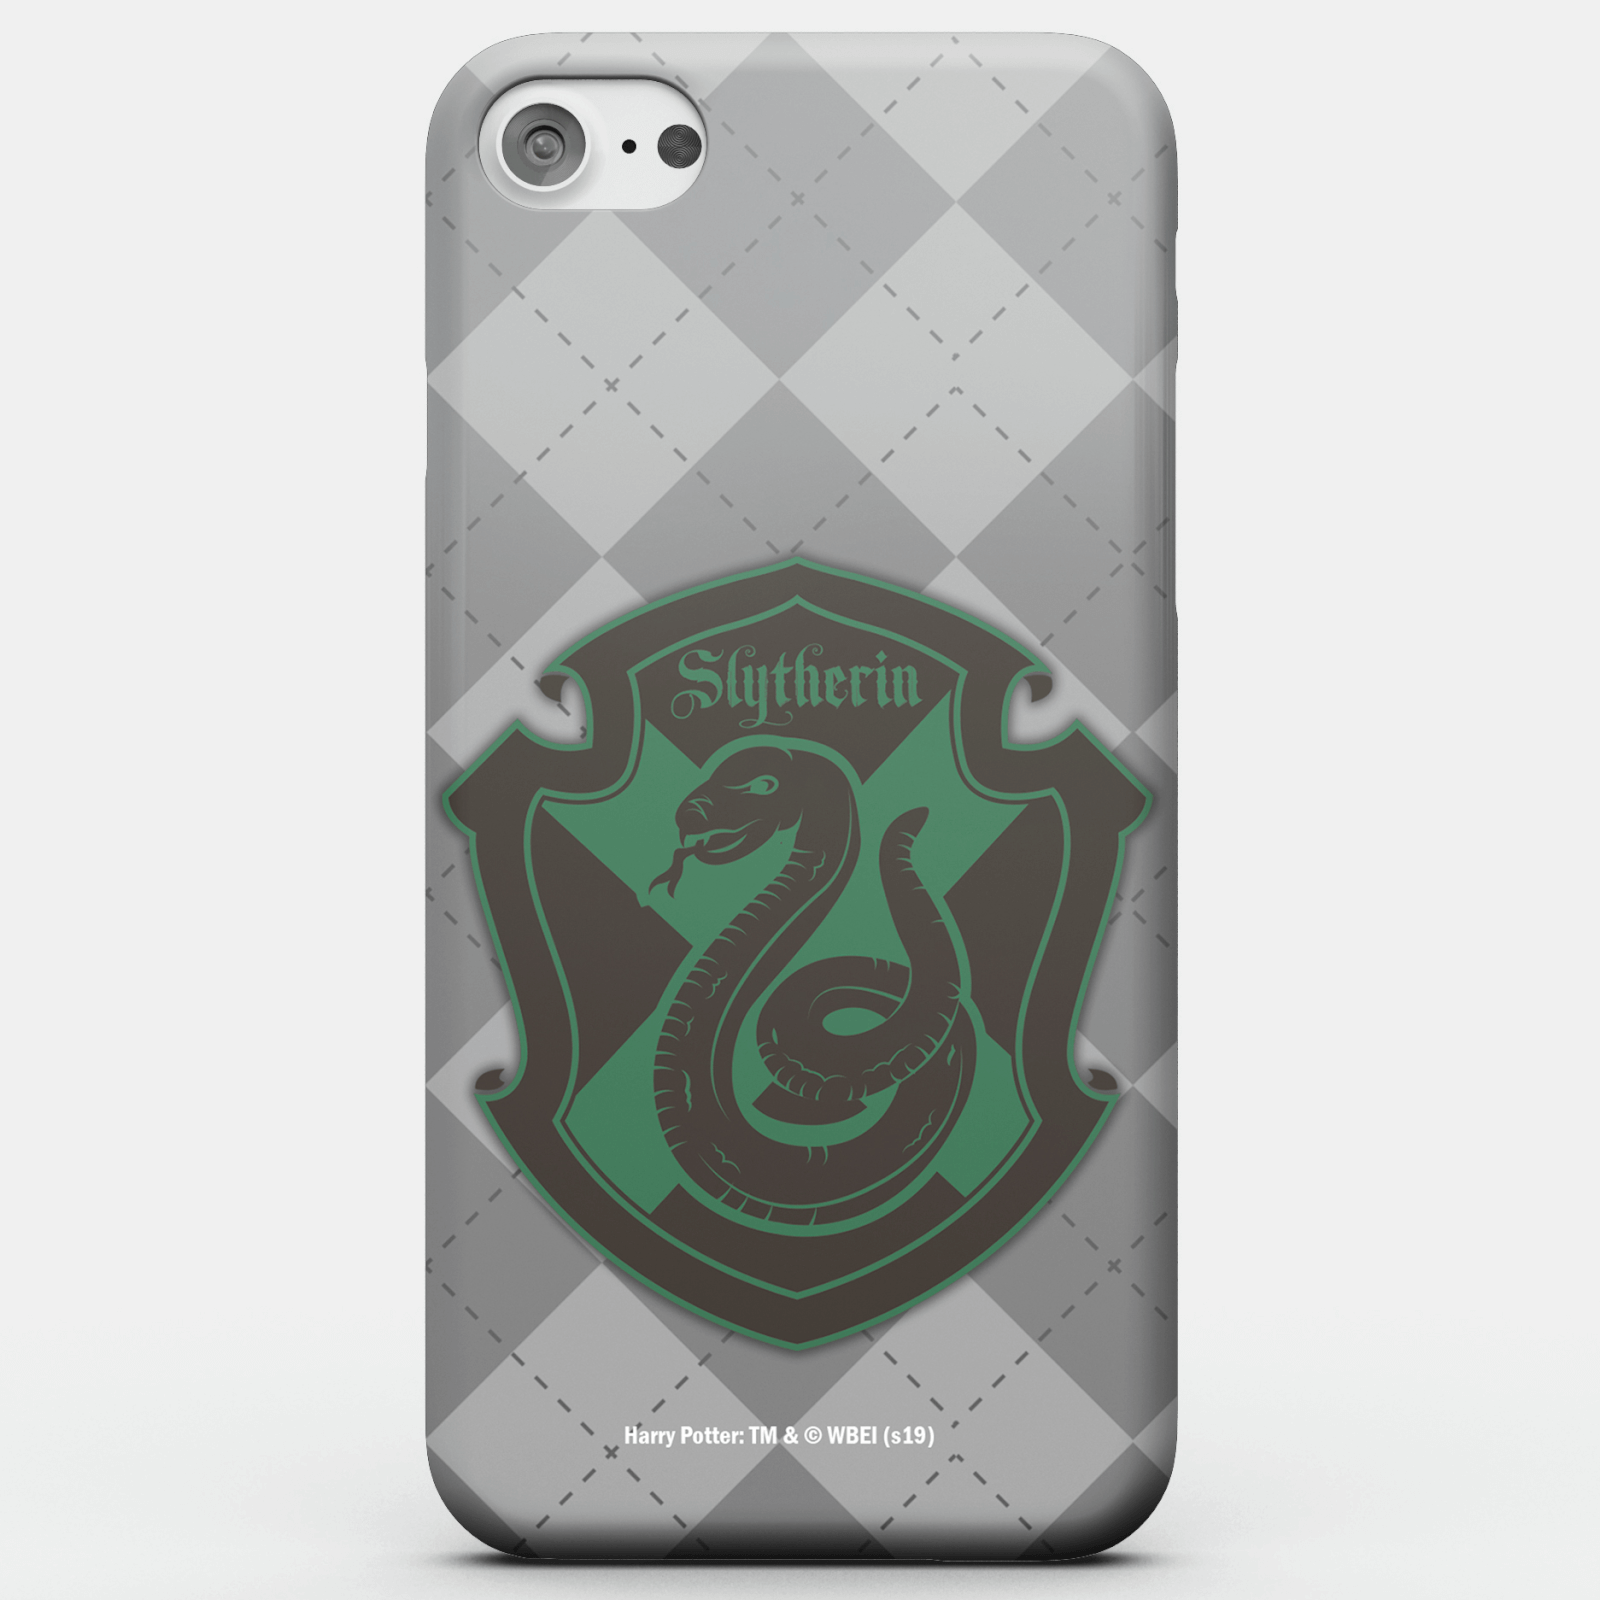 Funda Móvil Harry Potter Slytherin Crest para iPhone y Android - iPhone 5C - Carcasa rígida - Mate de Harry Potter